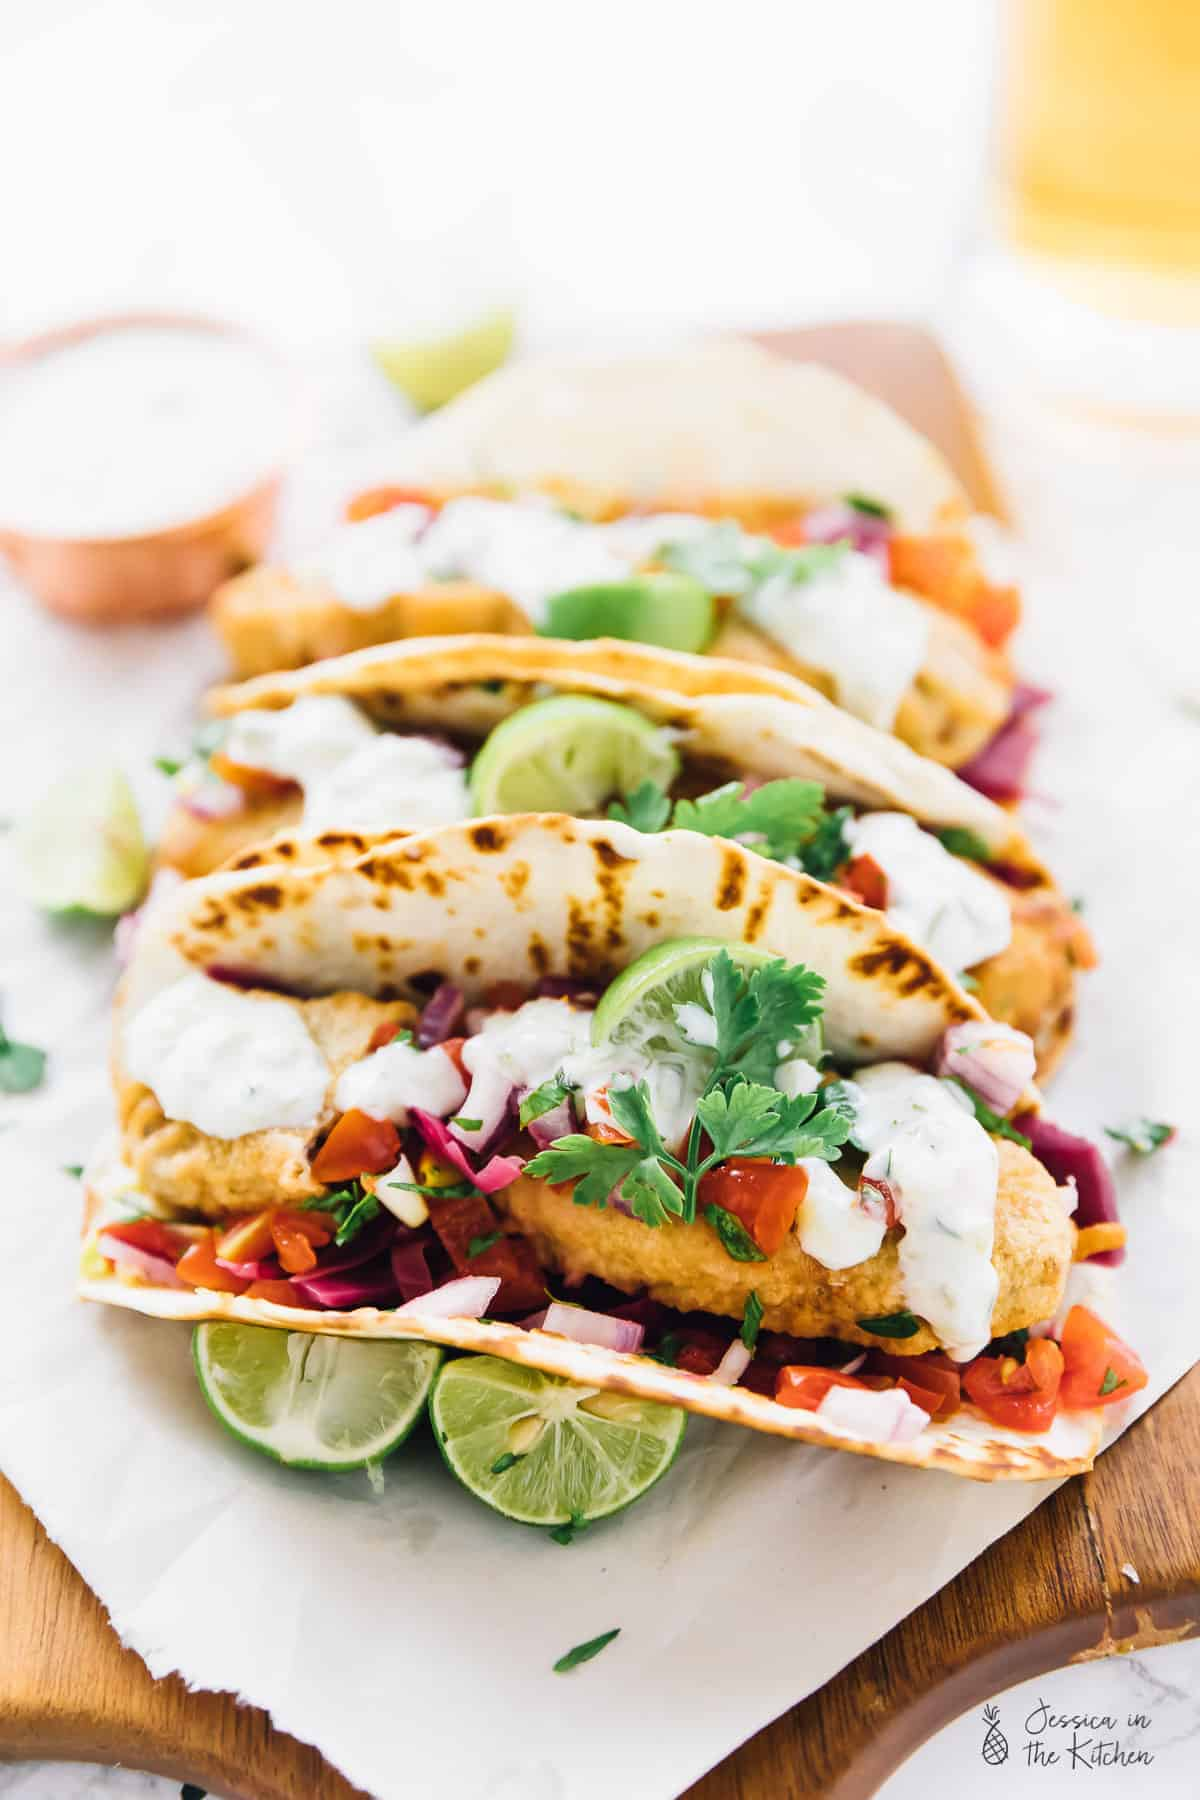 ThisVegan Fish Tacos are a real vegan treat!! A beer-battered crust,flavourful pico de gallo and a creamy tartar sauce make for the ultimate vegan taco experience! via https://jessicainthekitchen.com